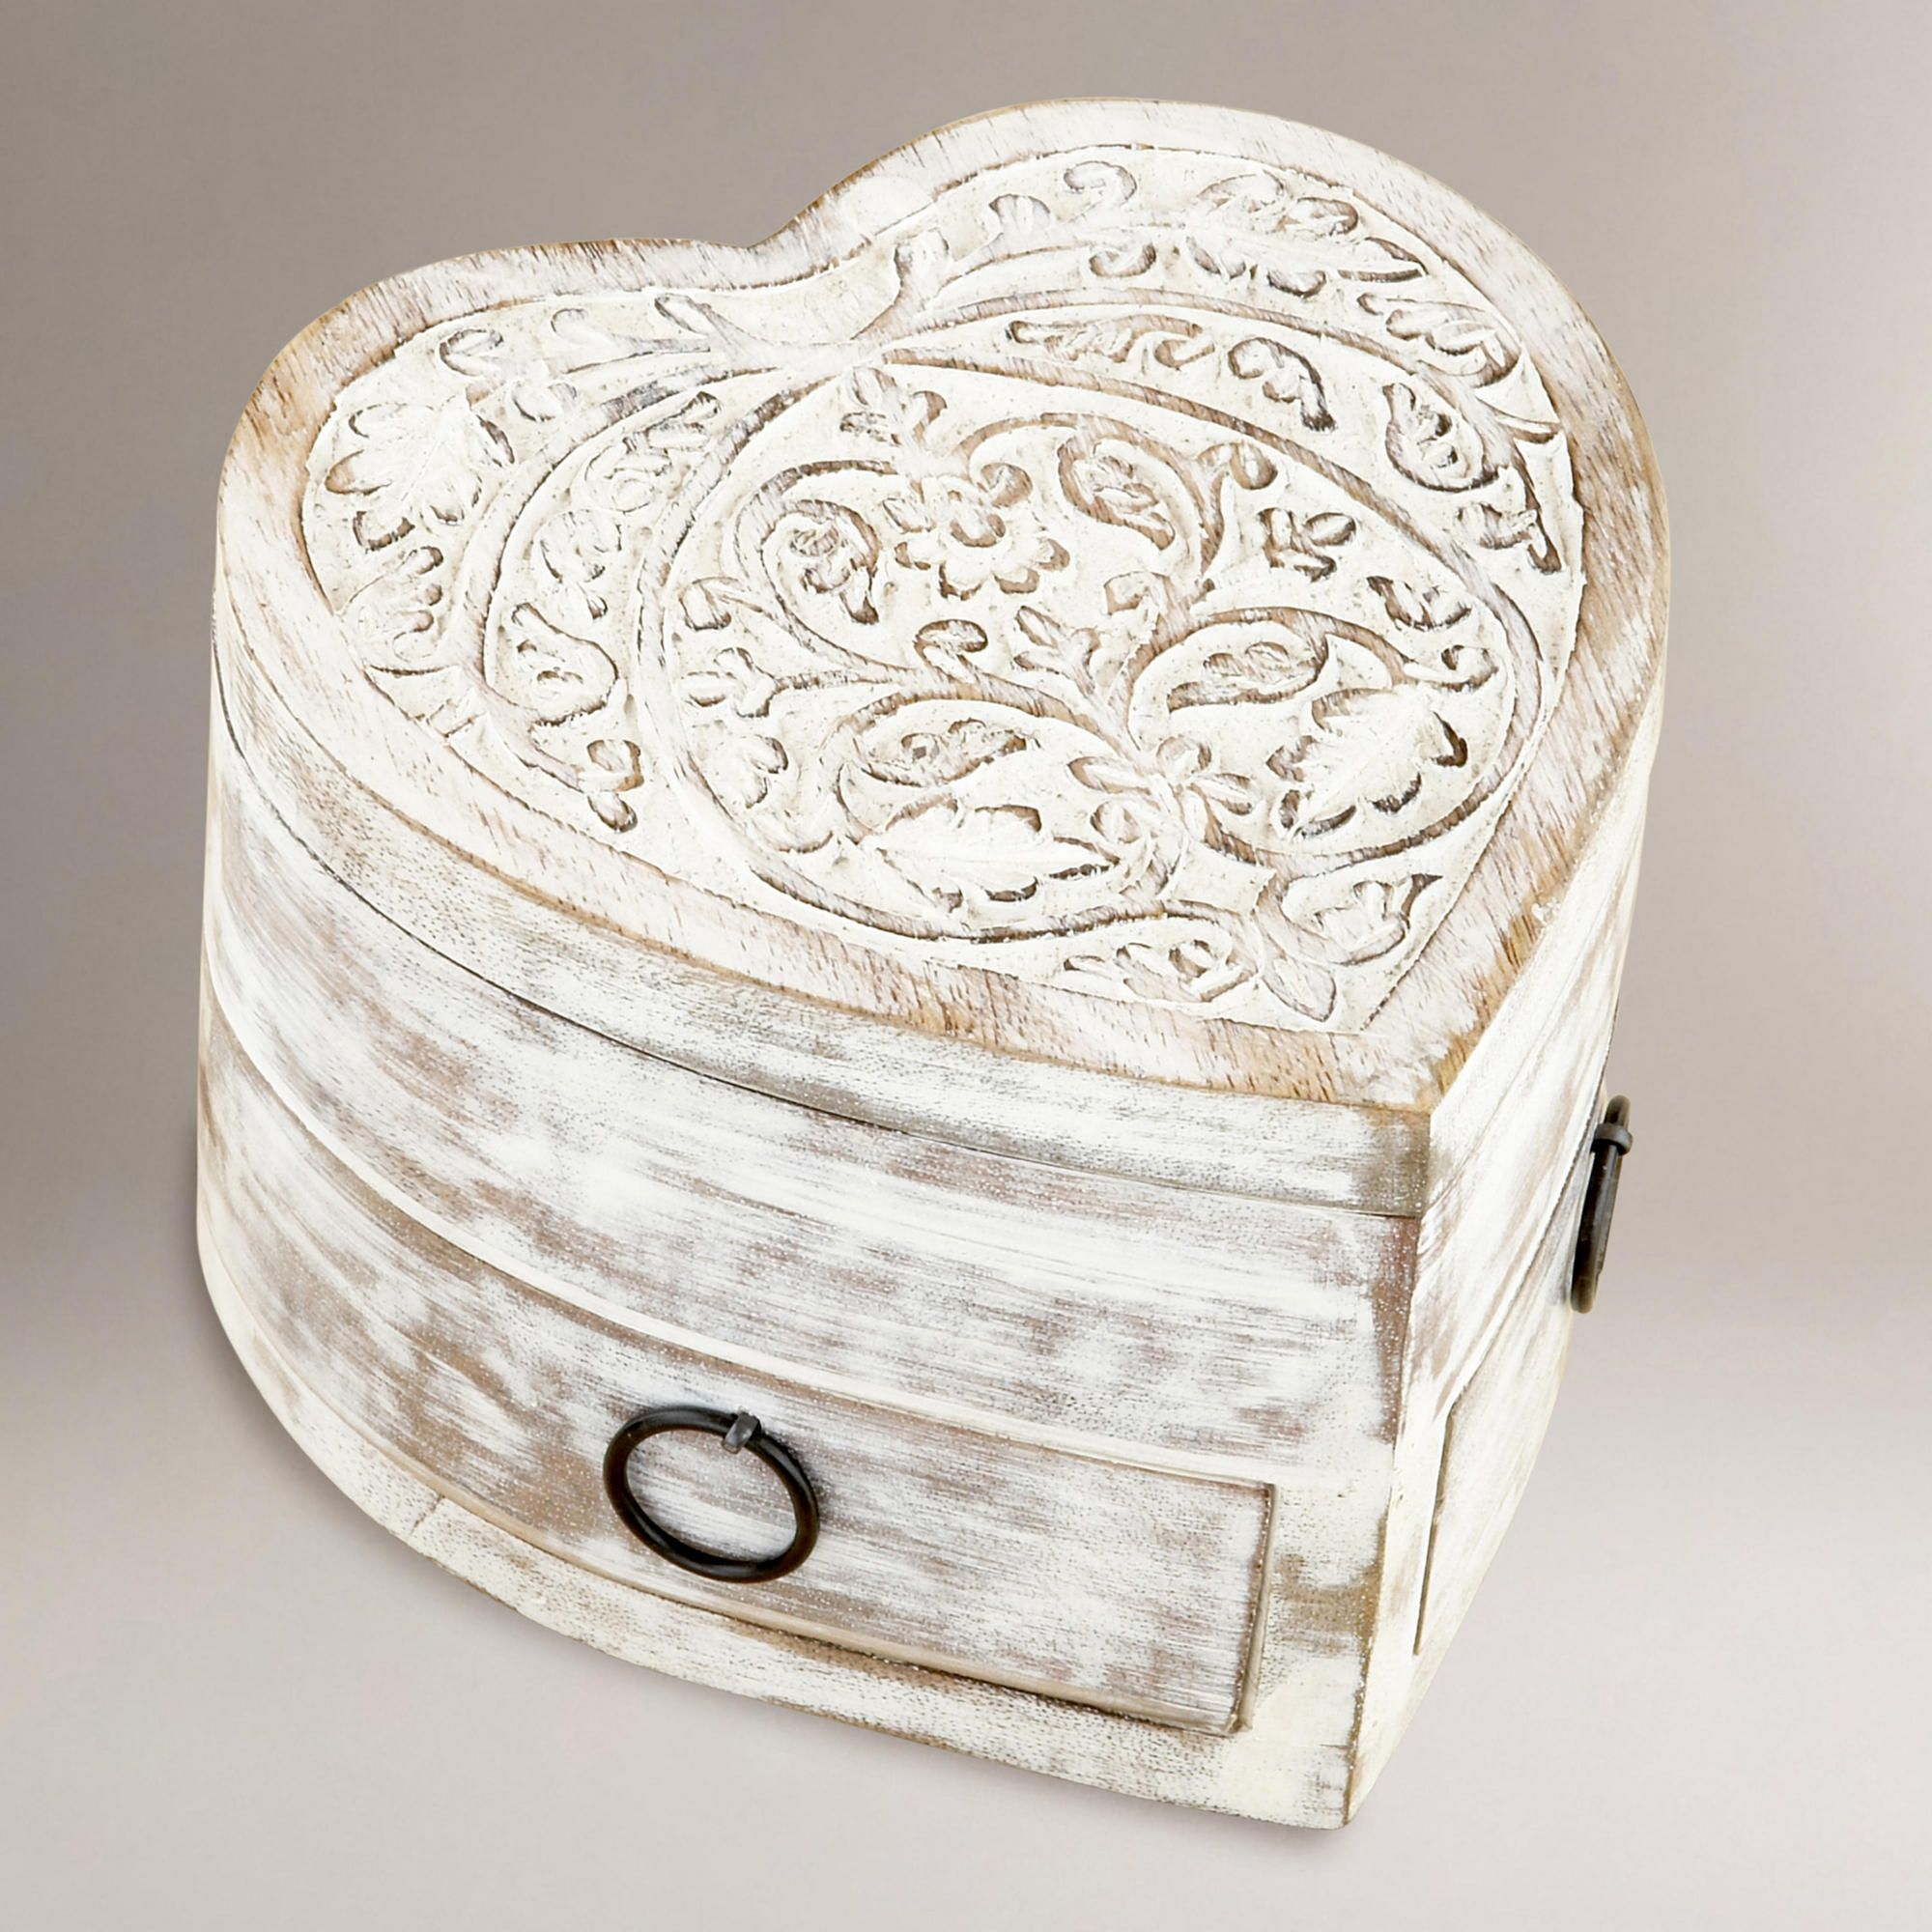 World Market Jewelry Box Captivating White Helena Heart Jewelry Box With Drawers  World Market  Hearts Inspiration